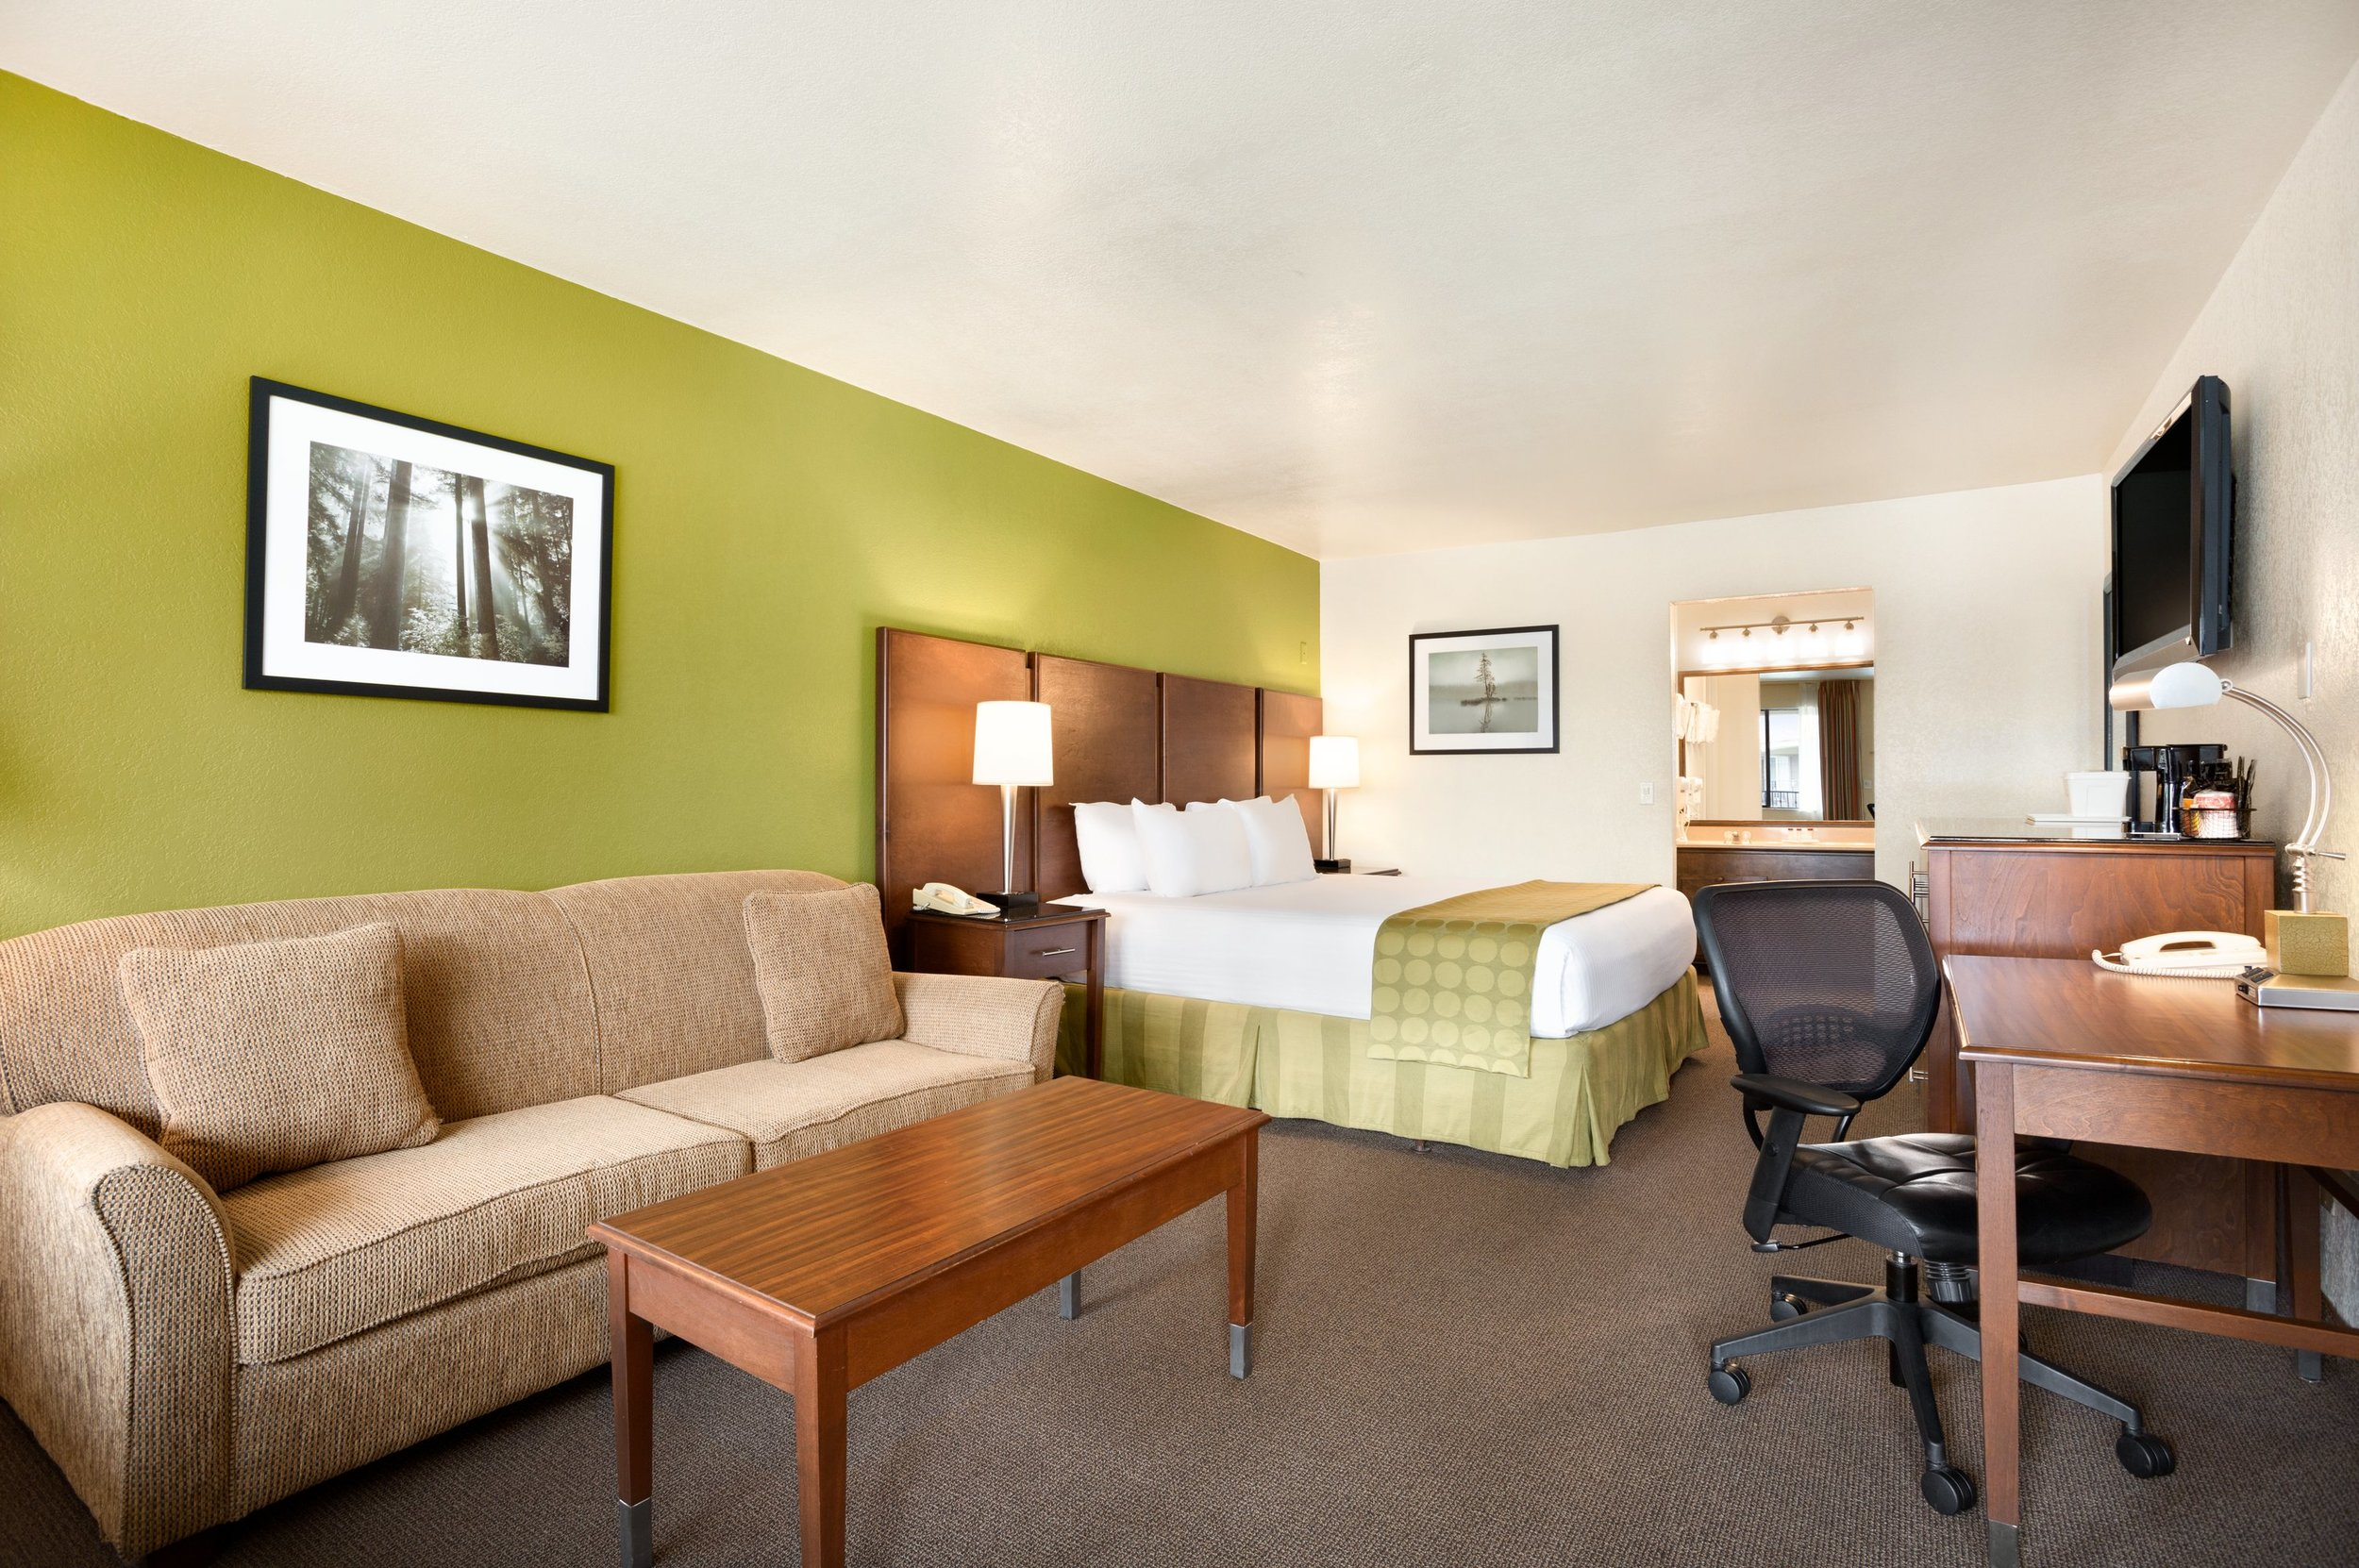 business class king - Our Business Class King is uniquely designed to accommodate business travelers and those looking for an elevated stay in San Diego. With a generous amount of living space and the addition of a queen-sized sleeper sofa, this room can comfortably house up to 4 guests. Spend your days enjoying our dynamic property, which is expertly designed to meet your every need.Max 4 Guests 1 King Bed, 1 Sofa Bed